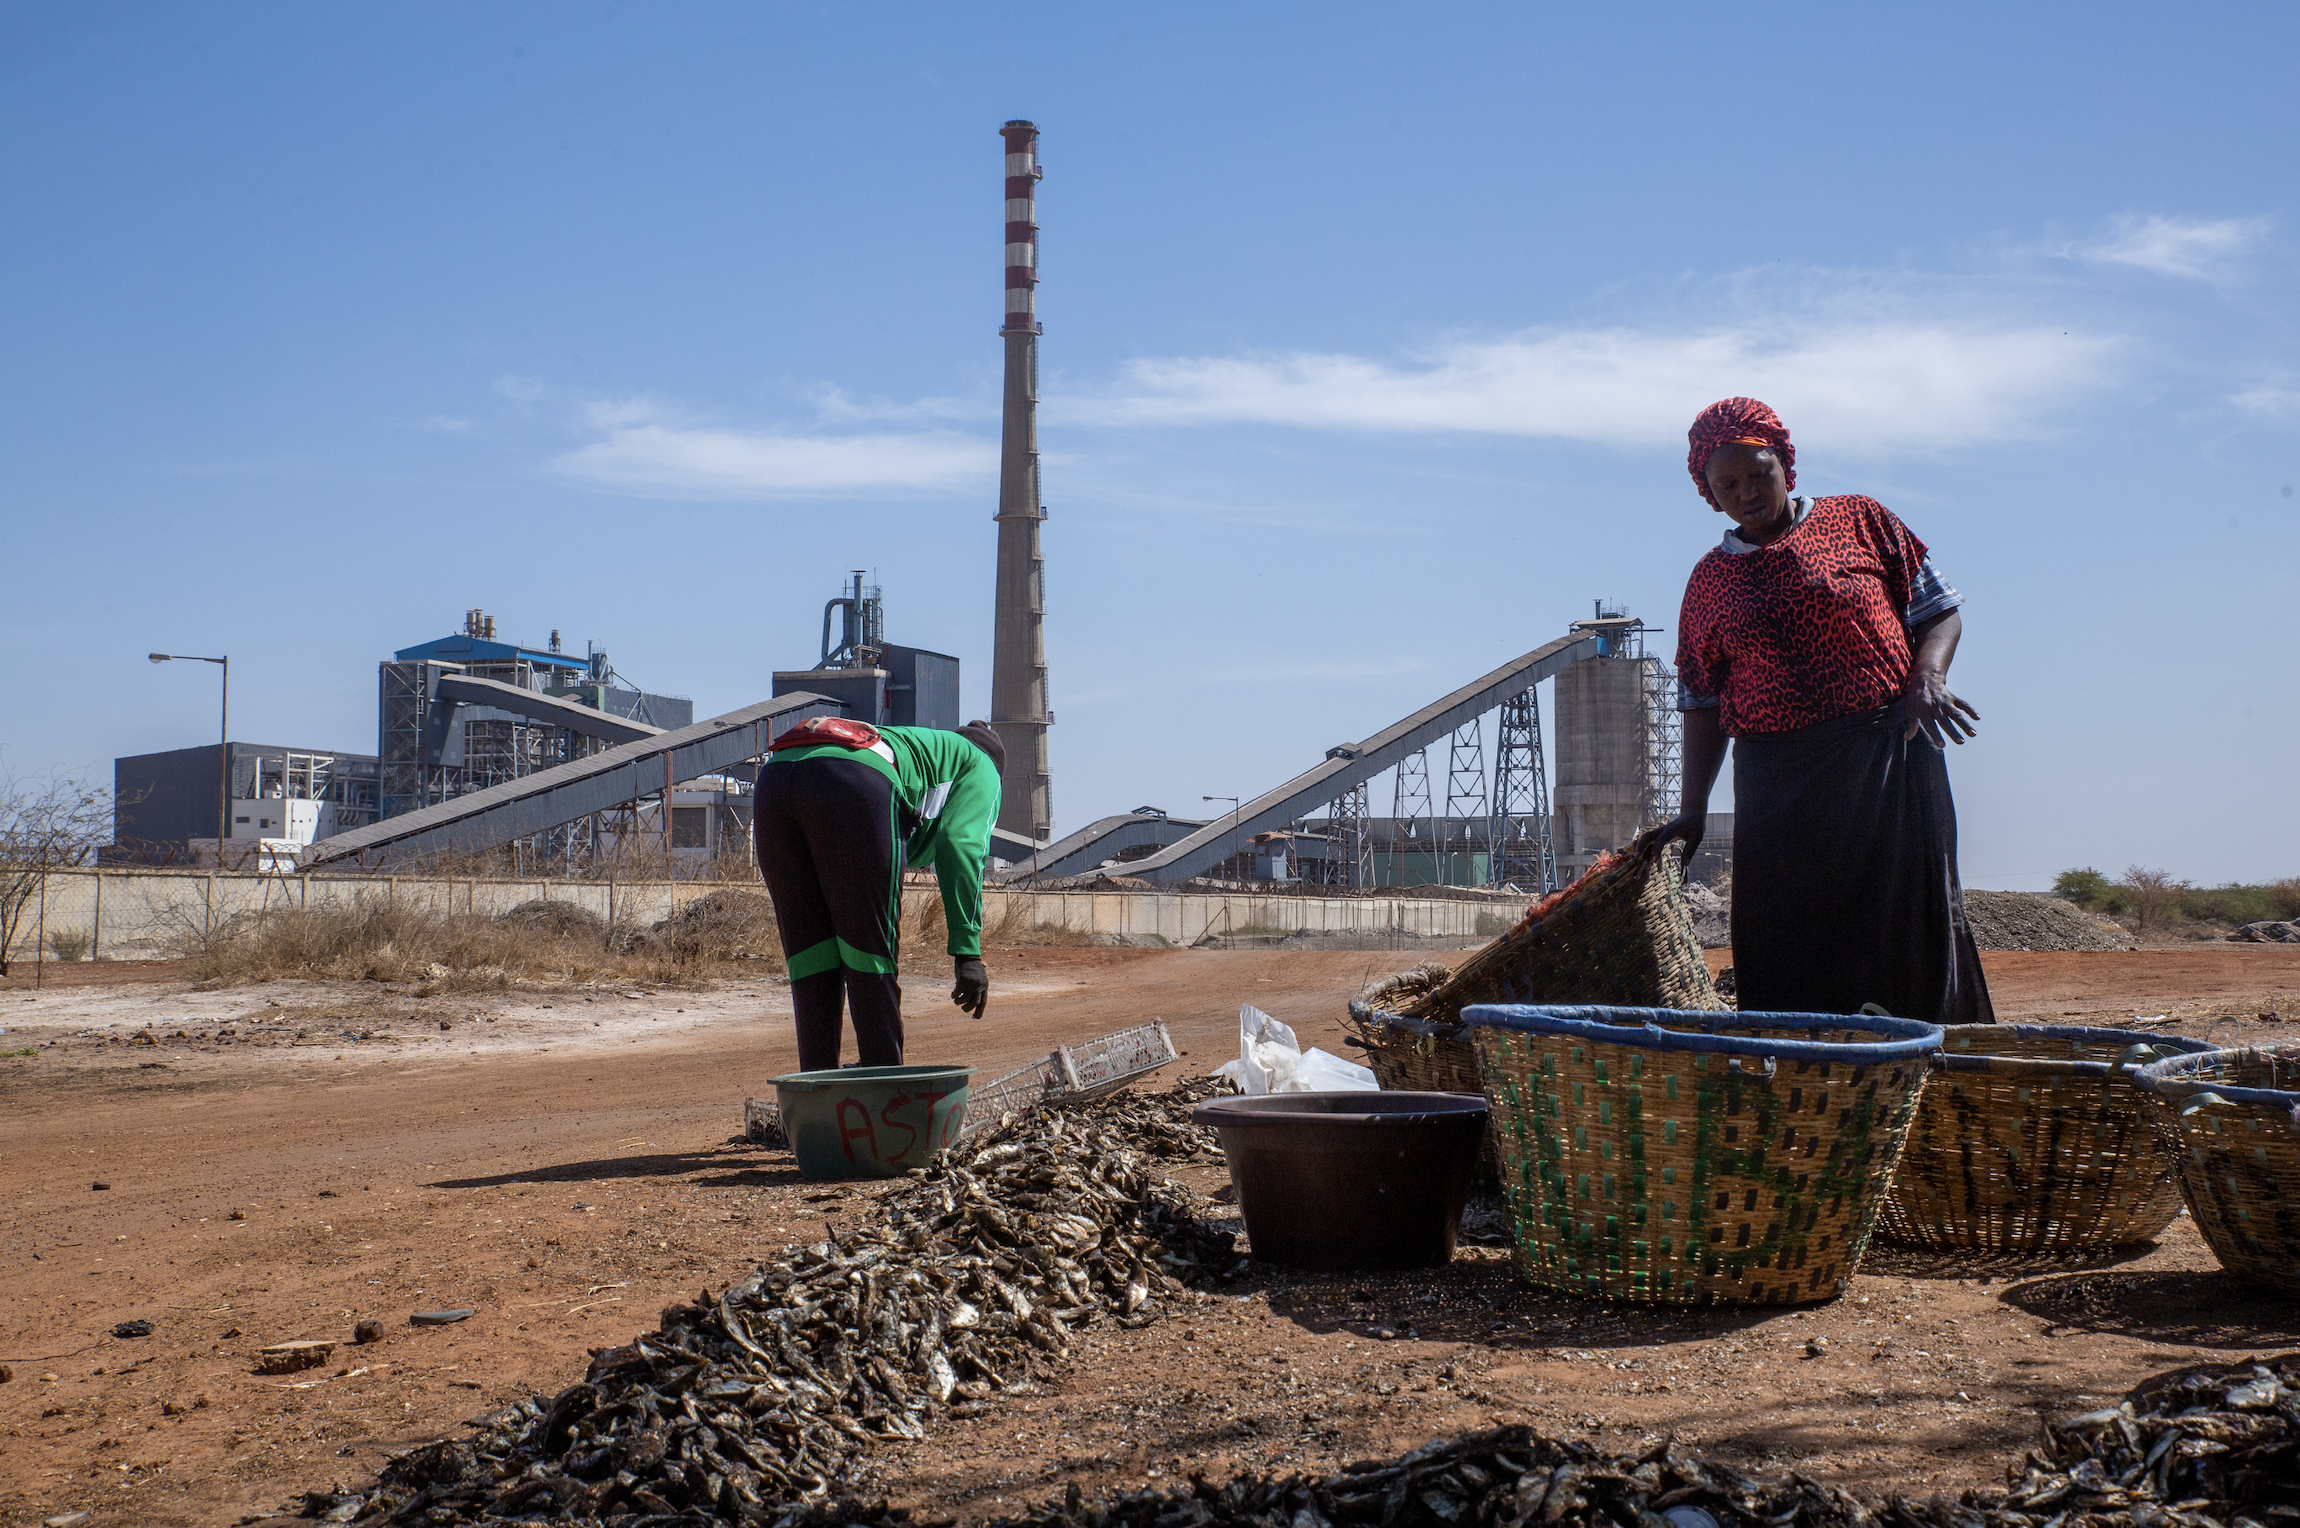 Women sort fish in front of the power plant.